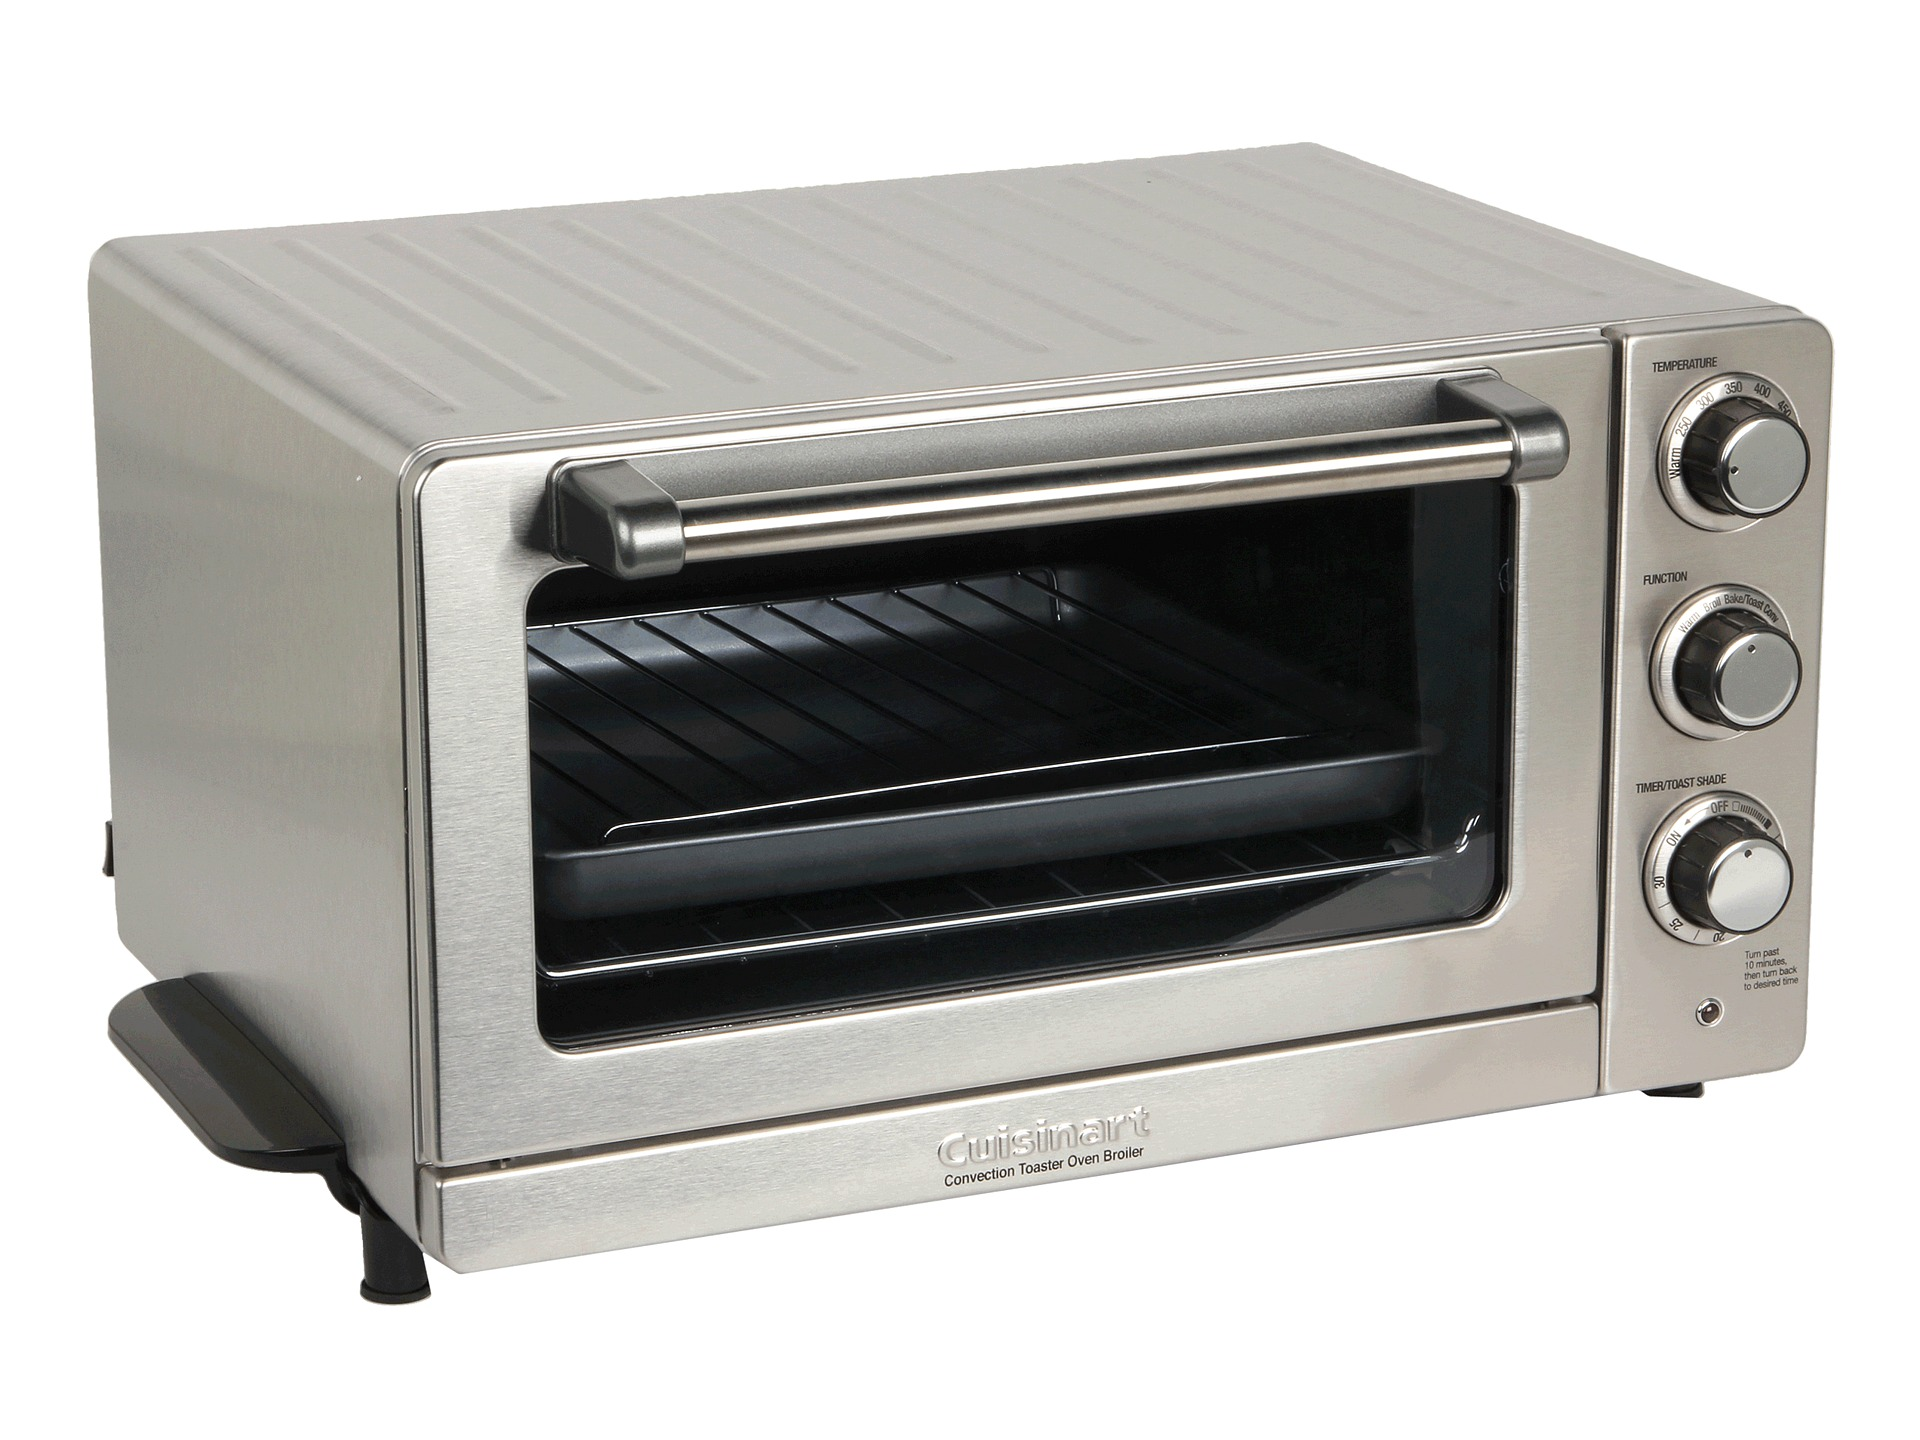 No results for cuisinart tob 60n convection toaster oven - Search ...